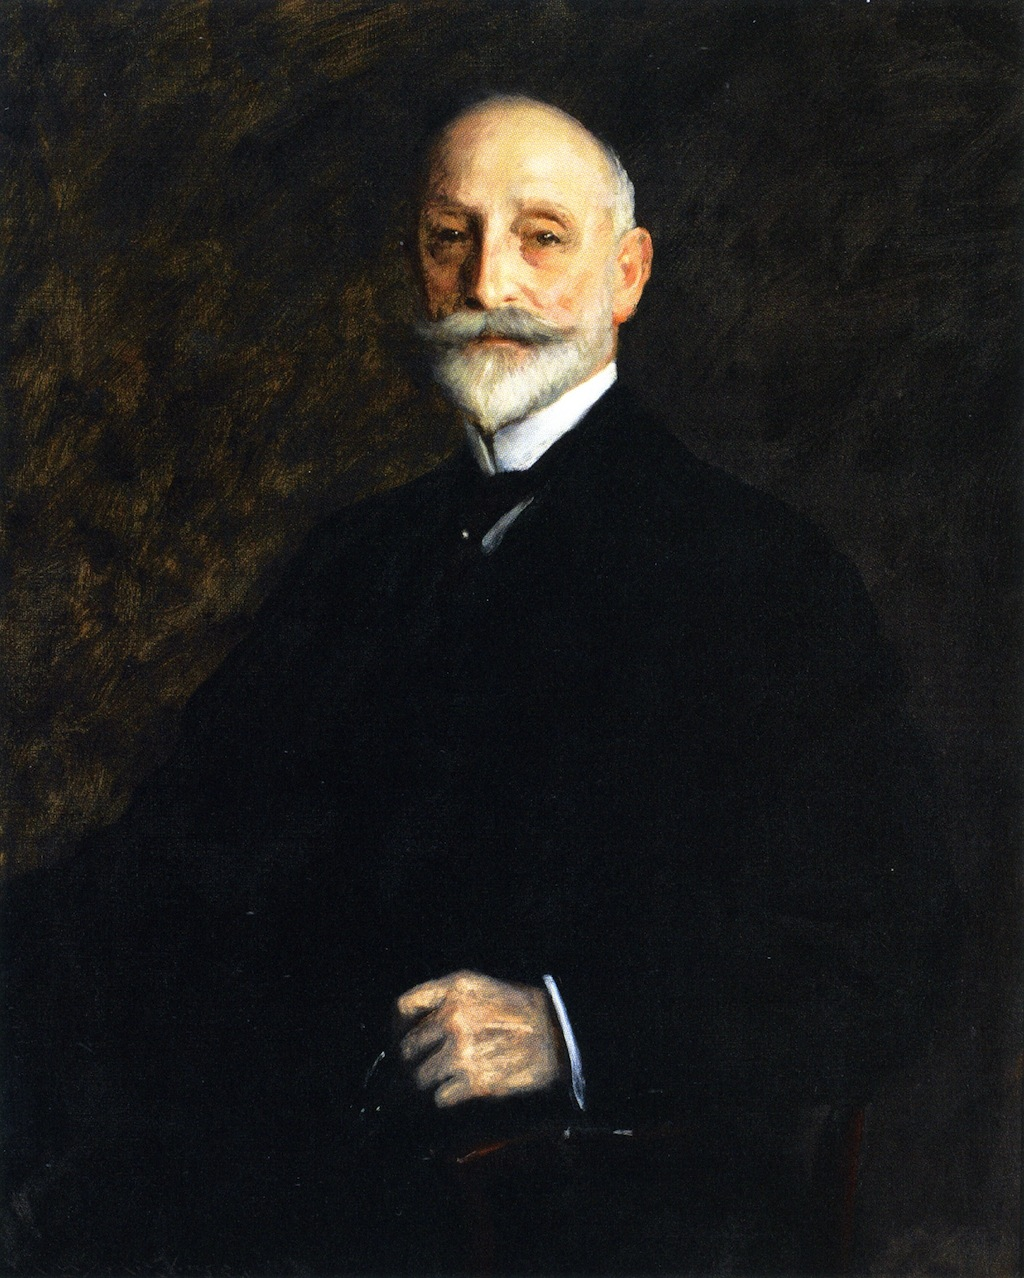 August B. Loeb, Esq by William Merritt Chase, 1905